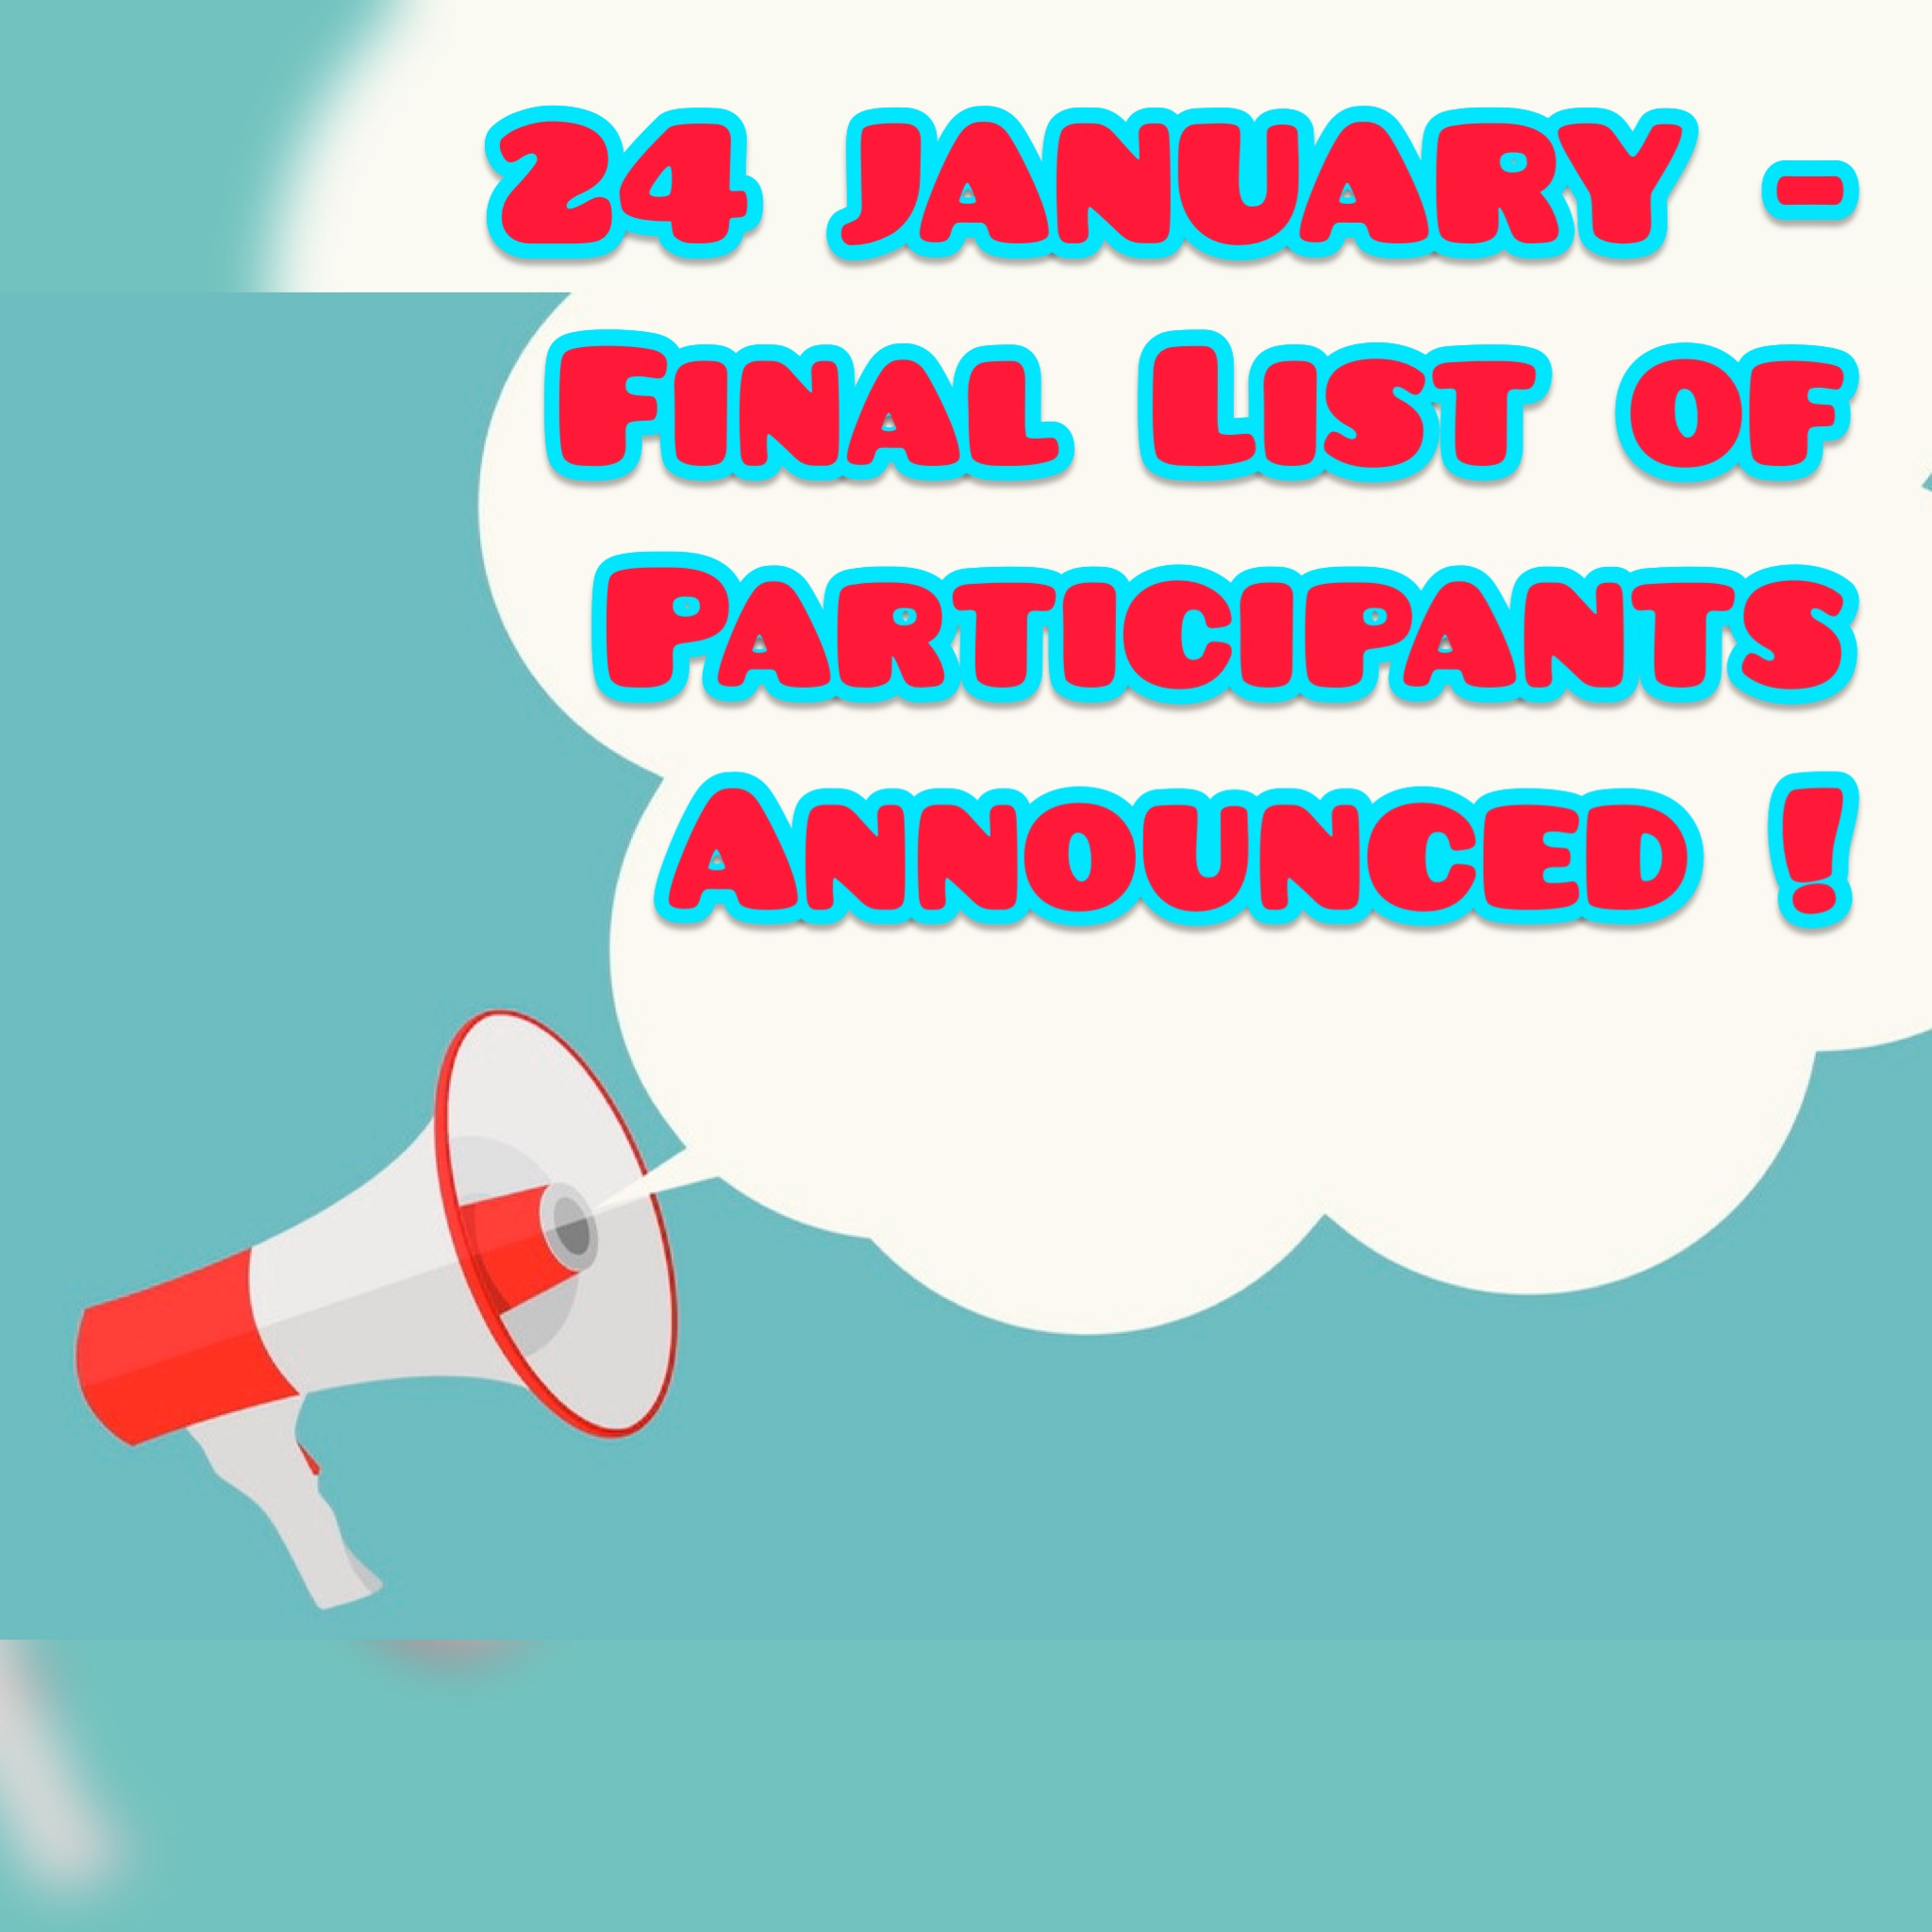 Attention! Announcement of the final list of participants for the Winter School postponed.